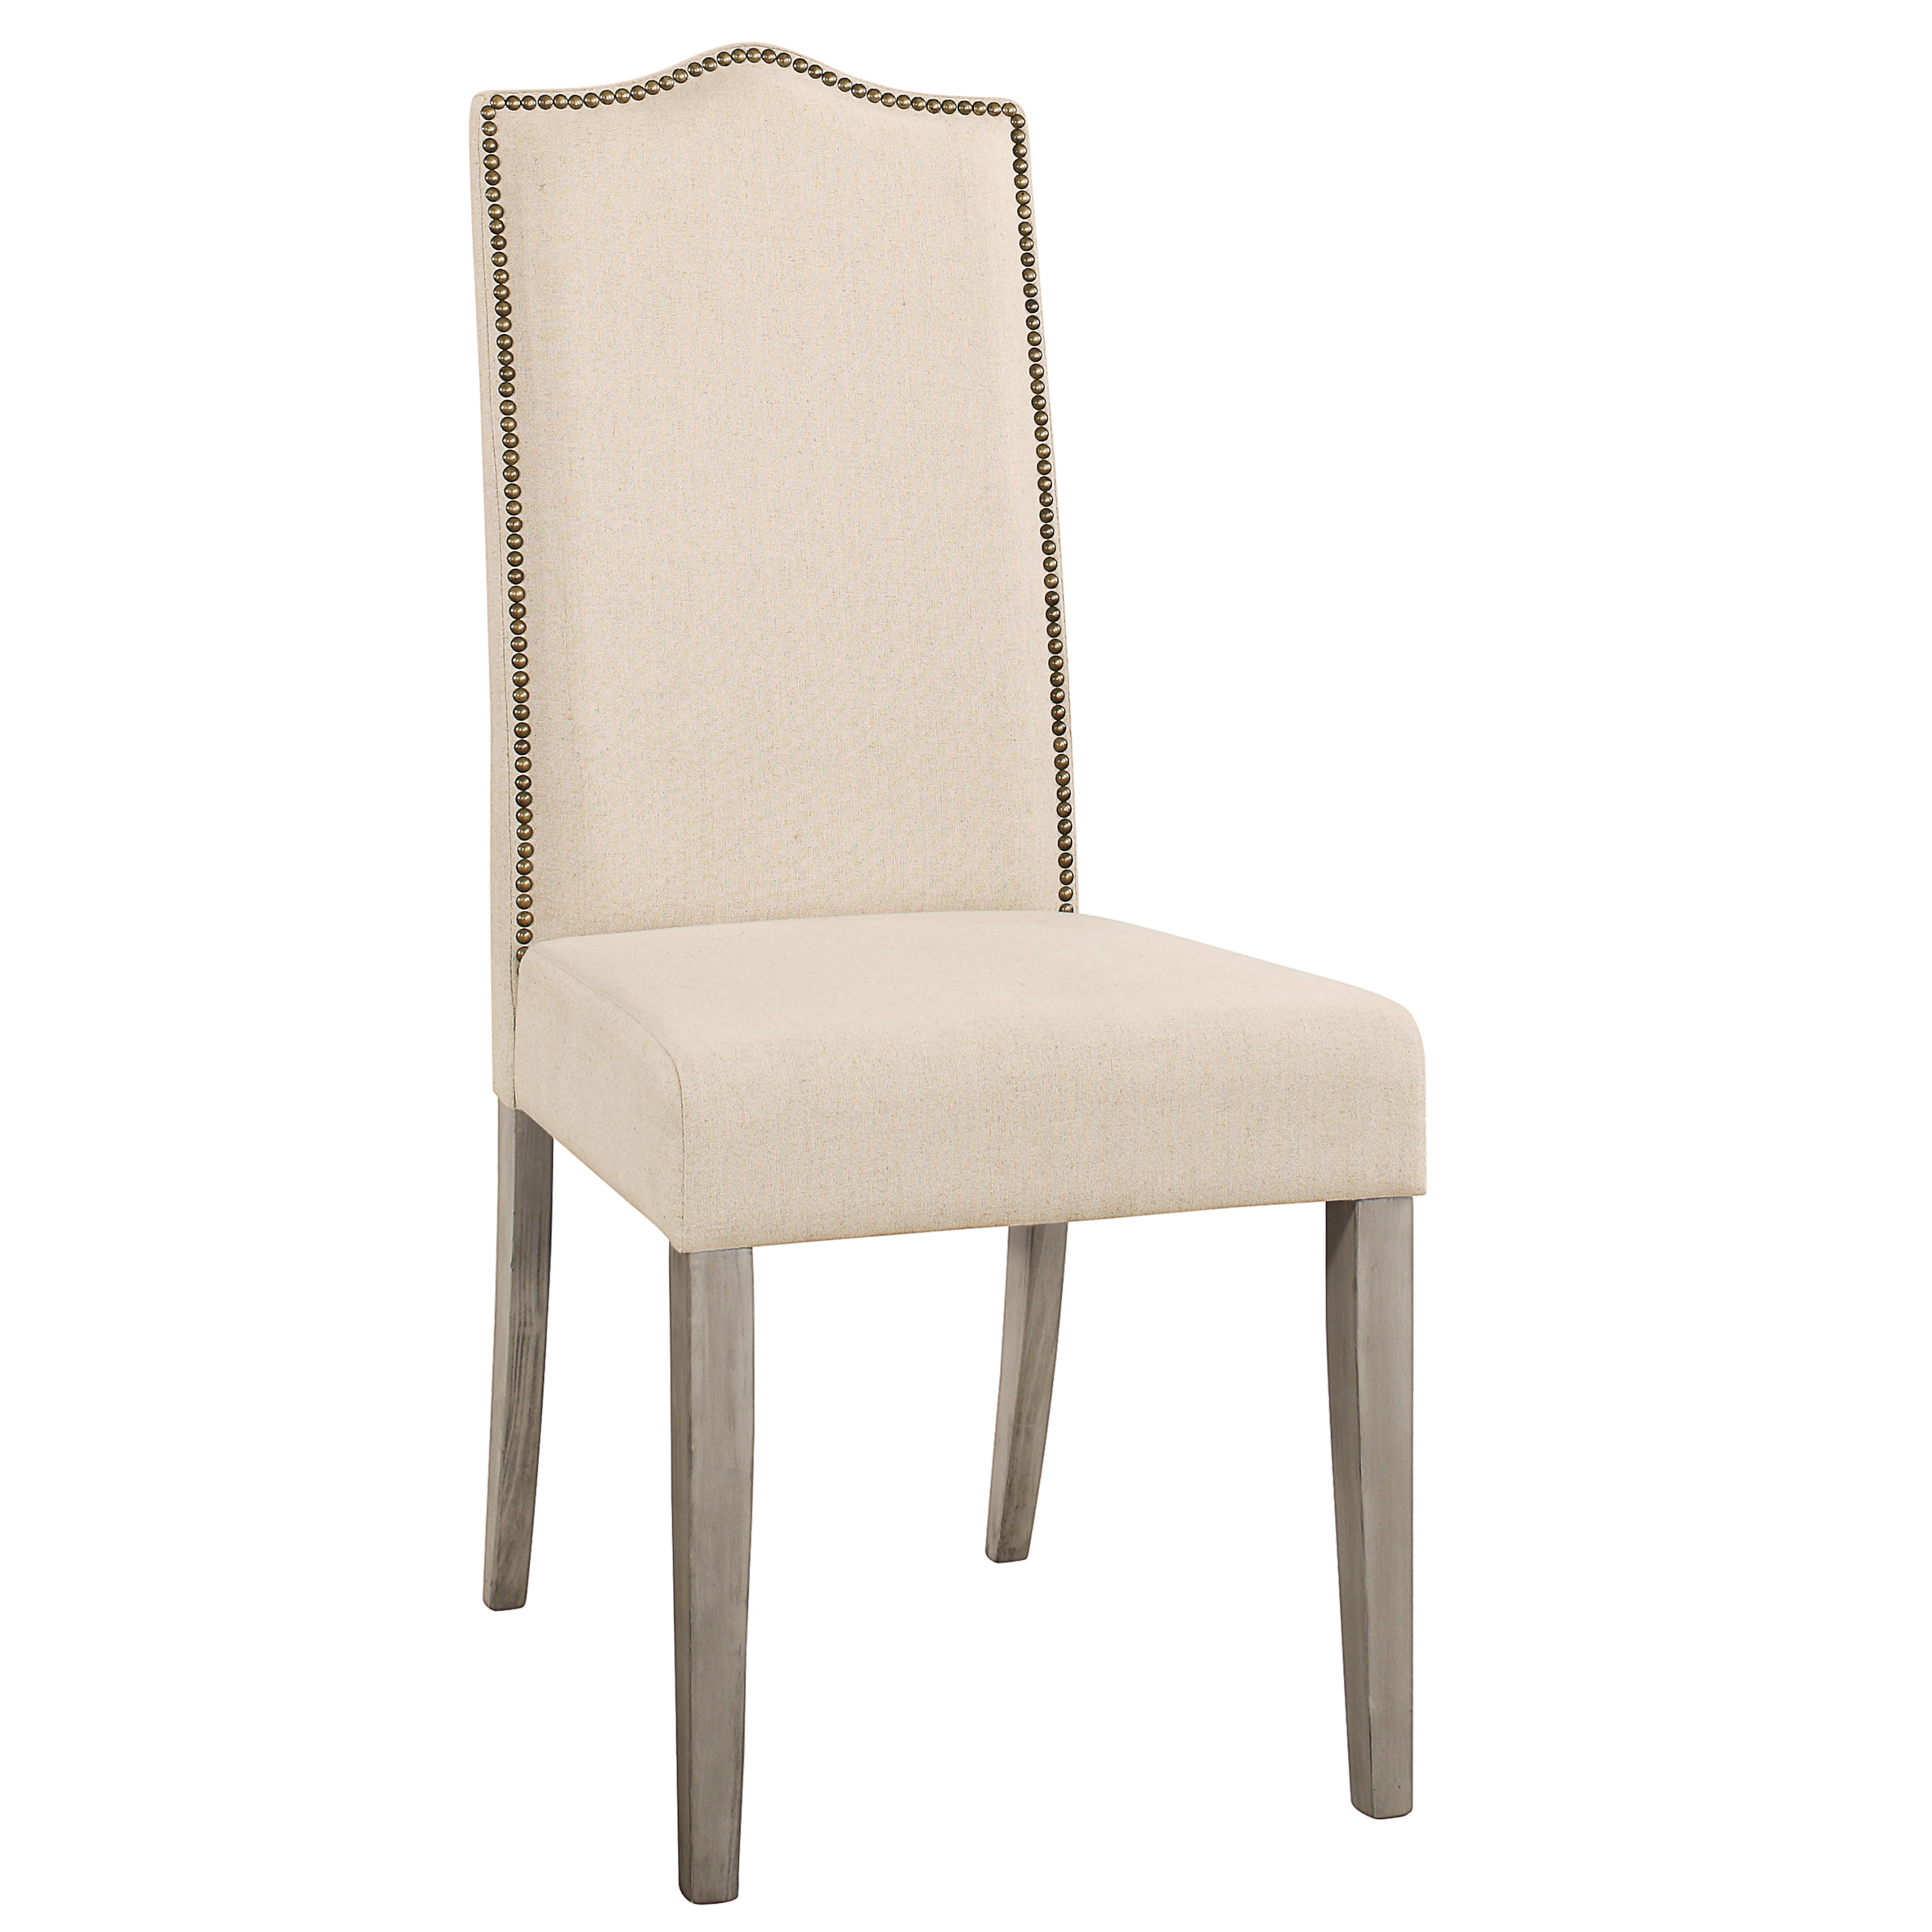 Hudson Nail Head Parson Chair, Weathered Gray w/ Linen